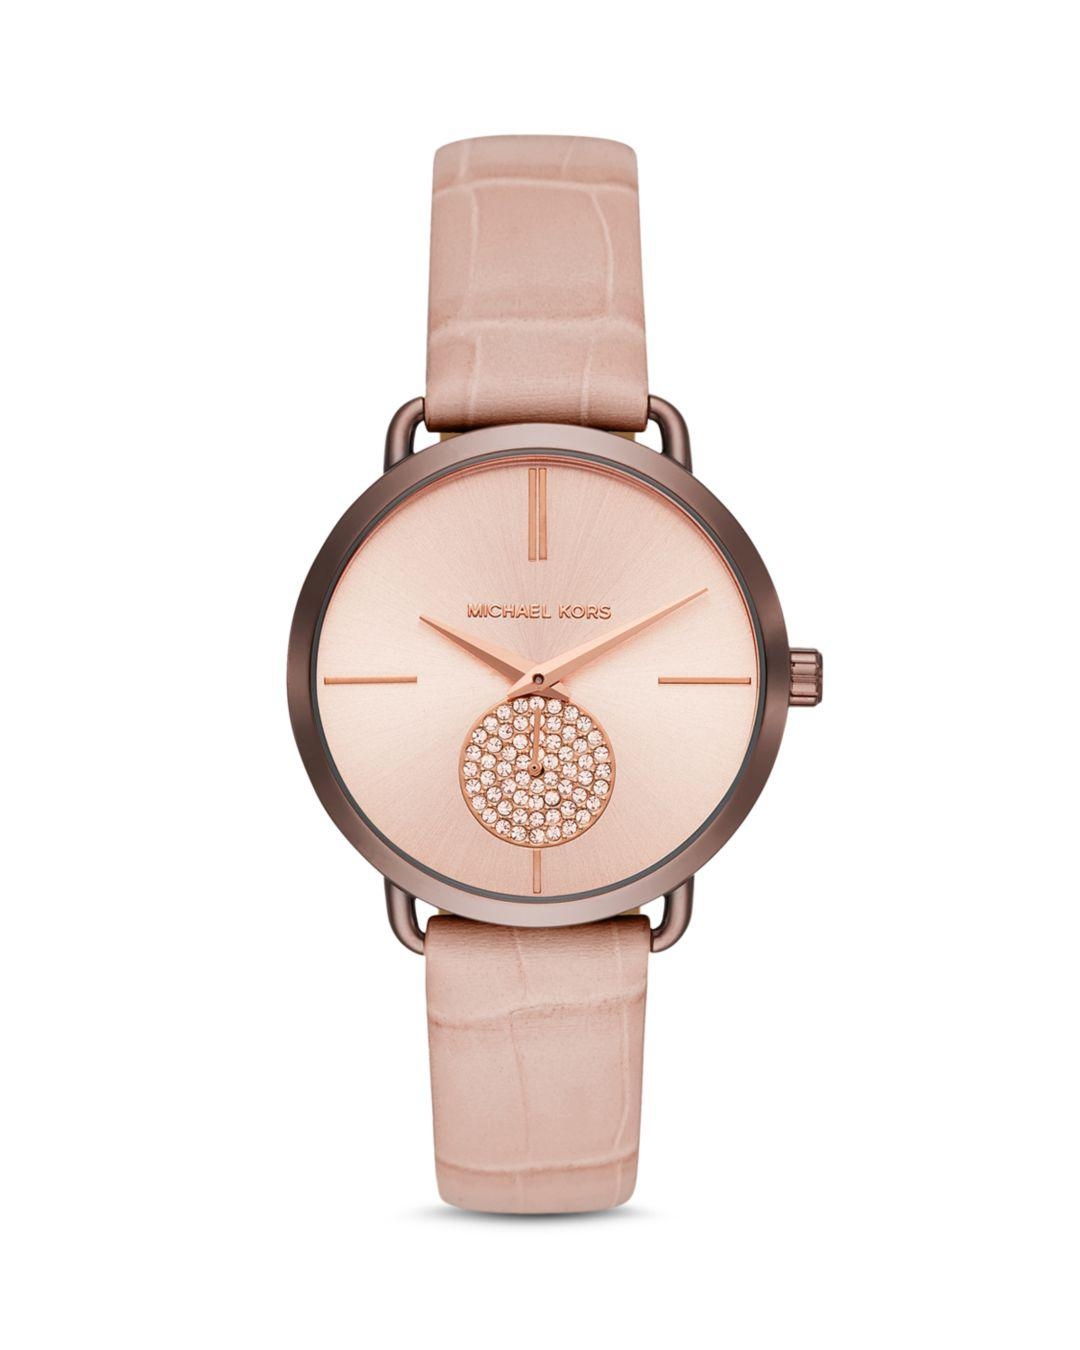 94bec9997ea9 Michael Kors - Pink Portia Crocodile-embossed Leather Strap Watch 37mm -  Lyst. View fullscreen